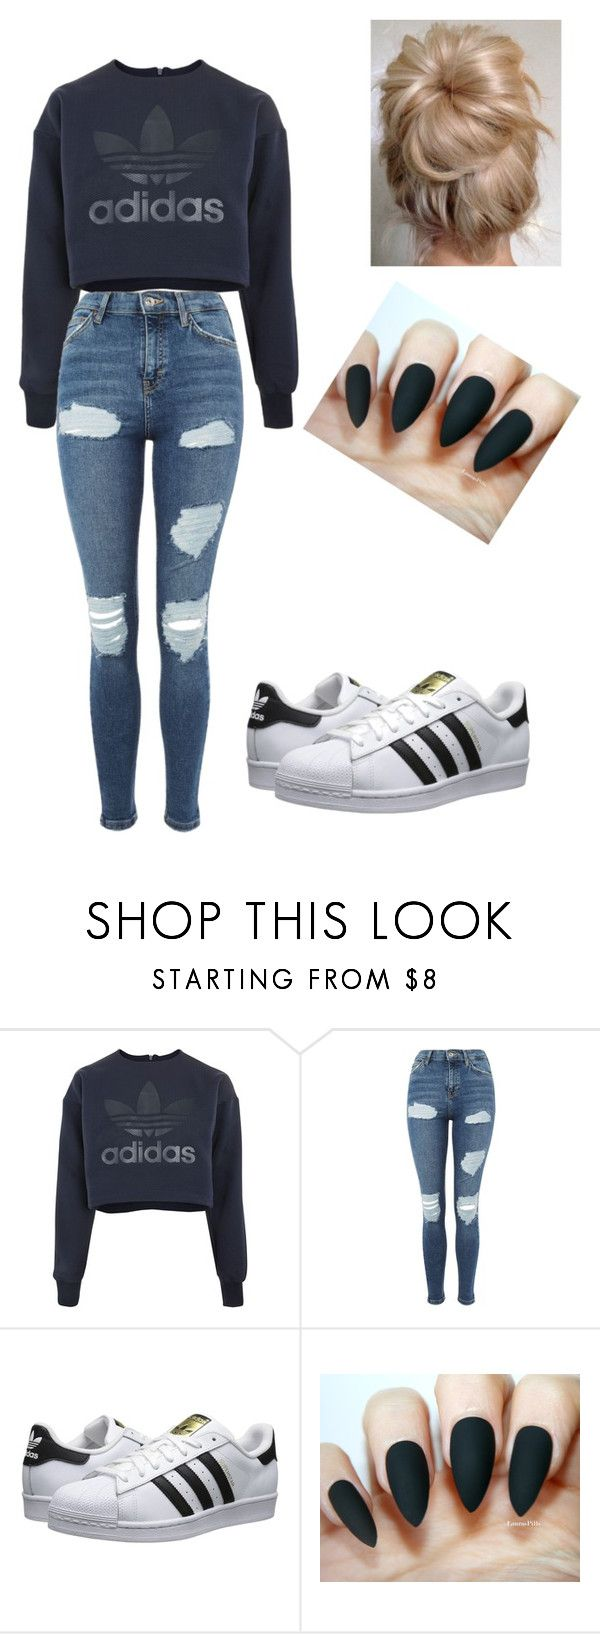 """""""Untitled #25"""" by weinsteini on Polyvore featuring adidas, Topshop and adidas Originals"""